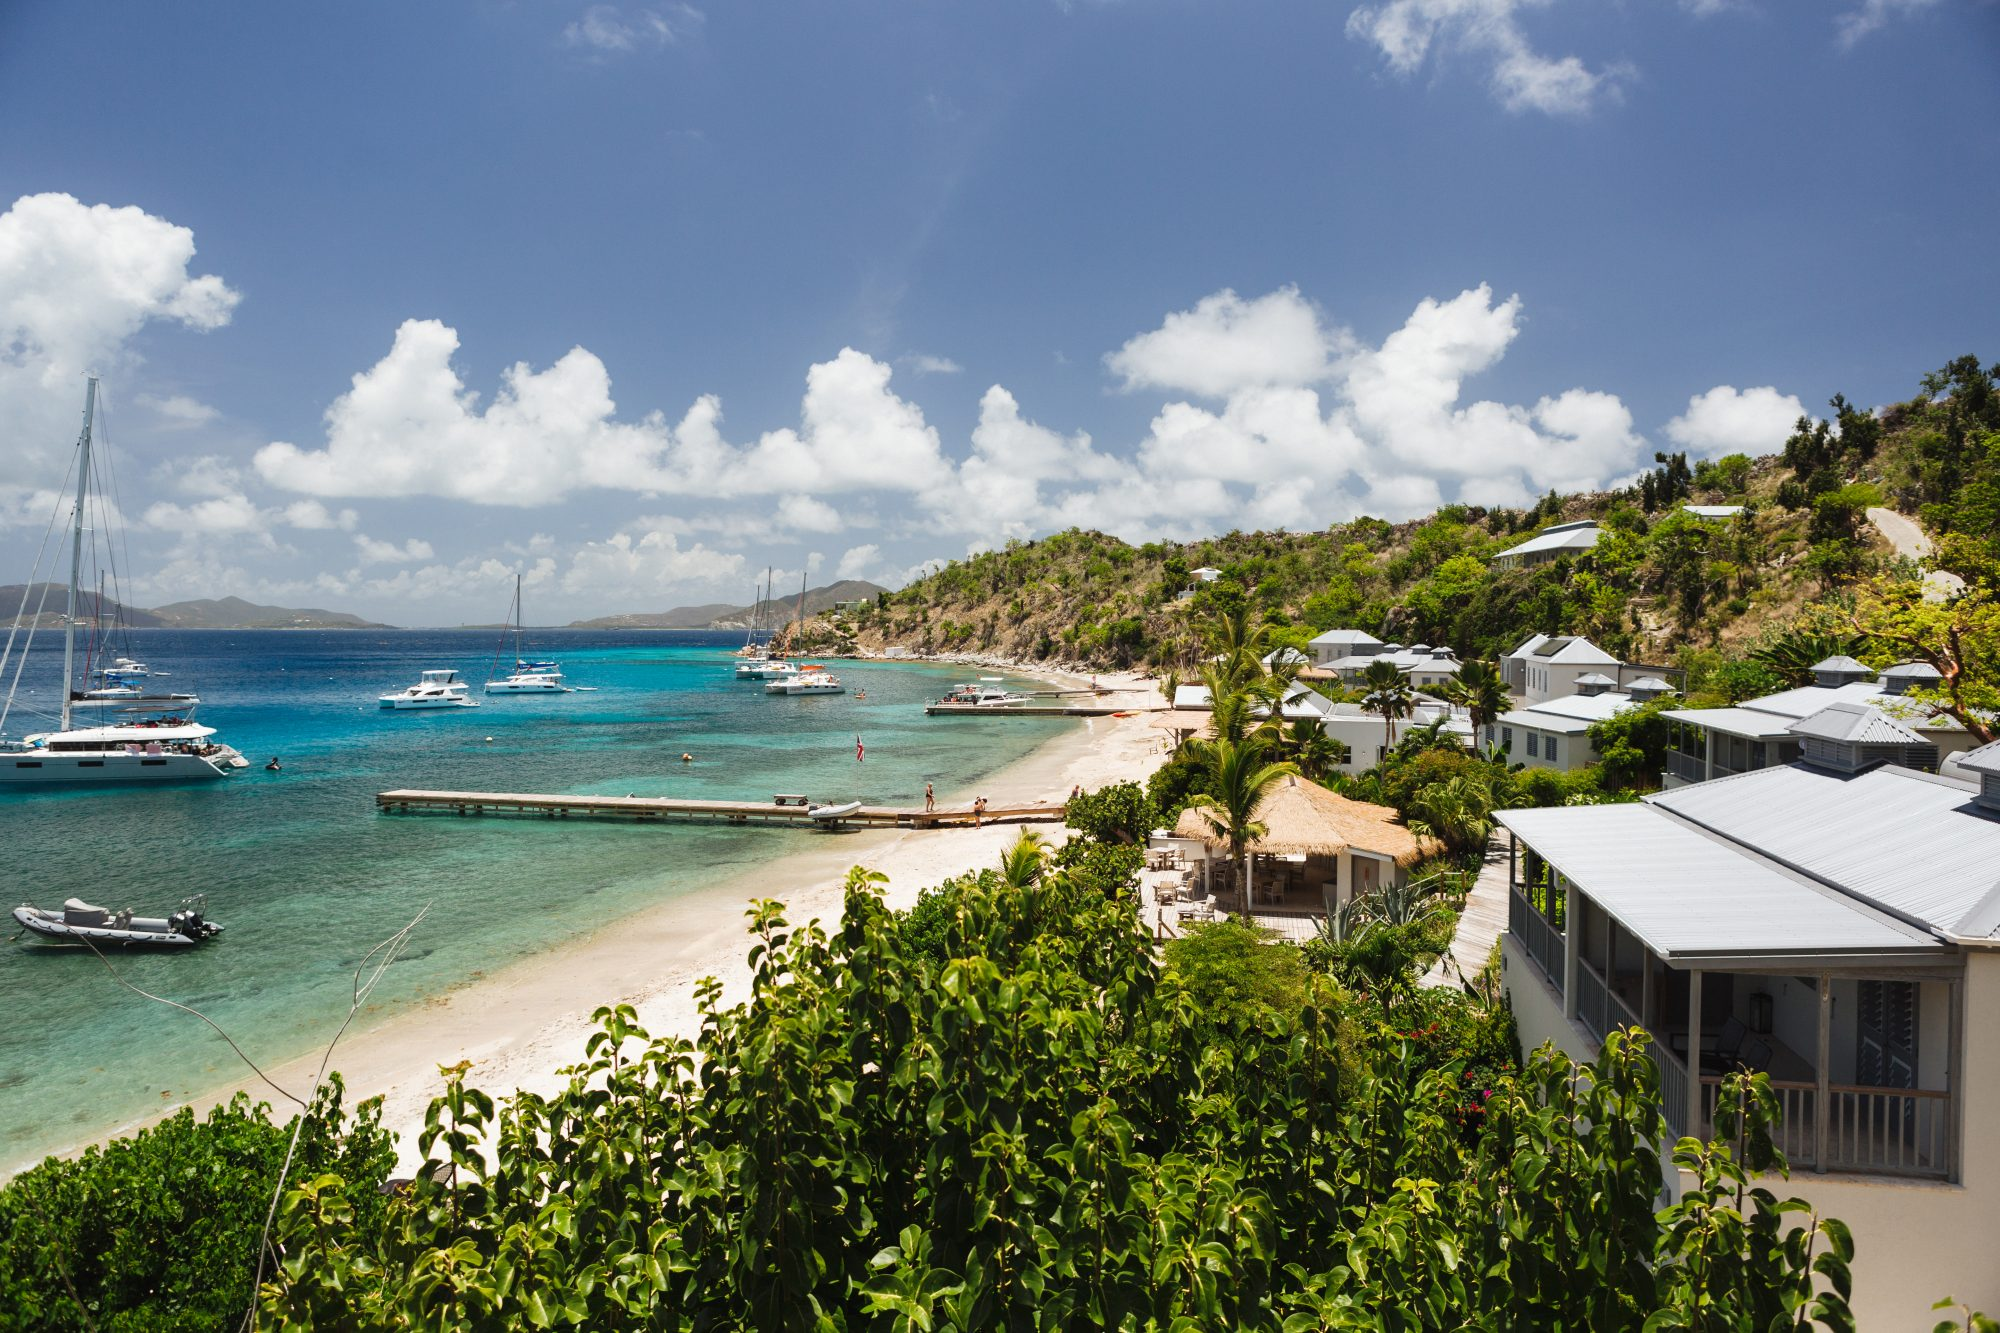 If the boating life is your cup of tea, this stylishly laid-back port in the British Virgin Islands might be just the ticket. The island is a favorite stop for yachtspeople cruising the archipelago's famously blue clear waters: 30 moorings are available i